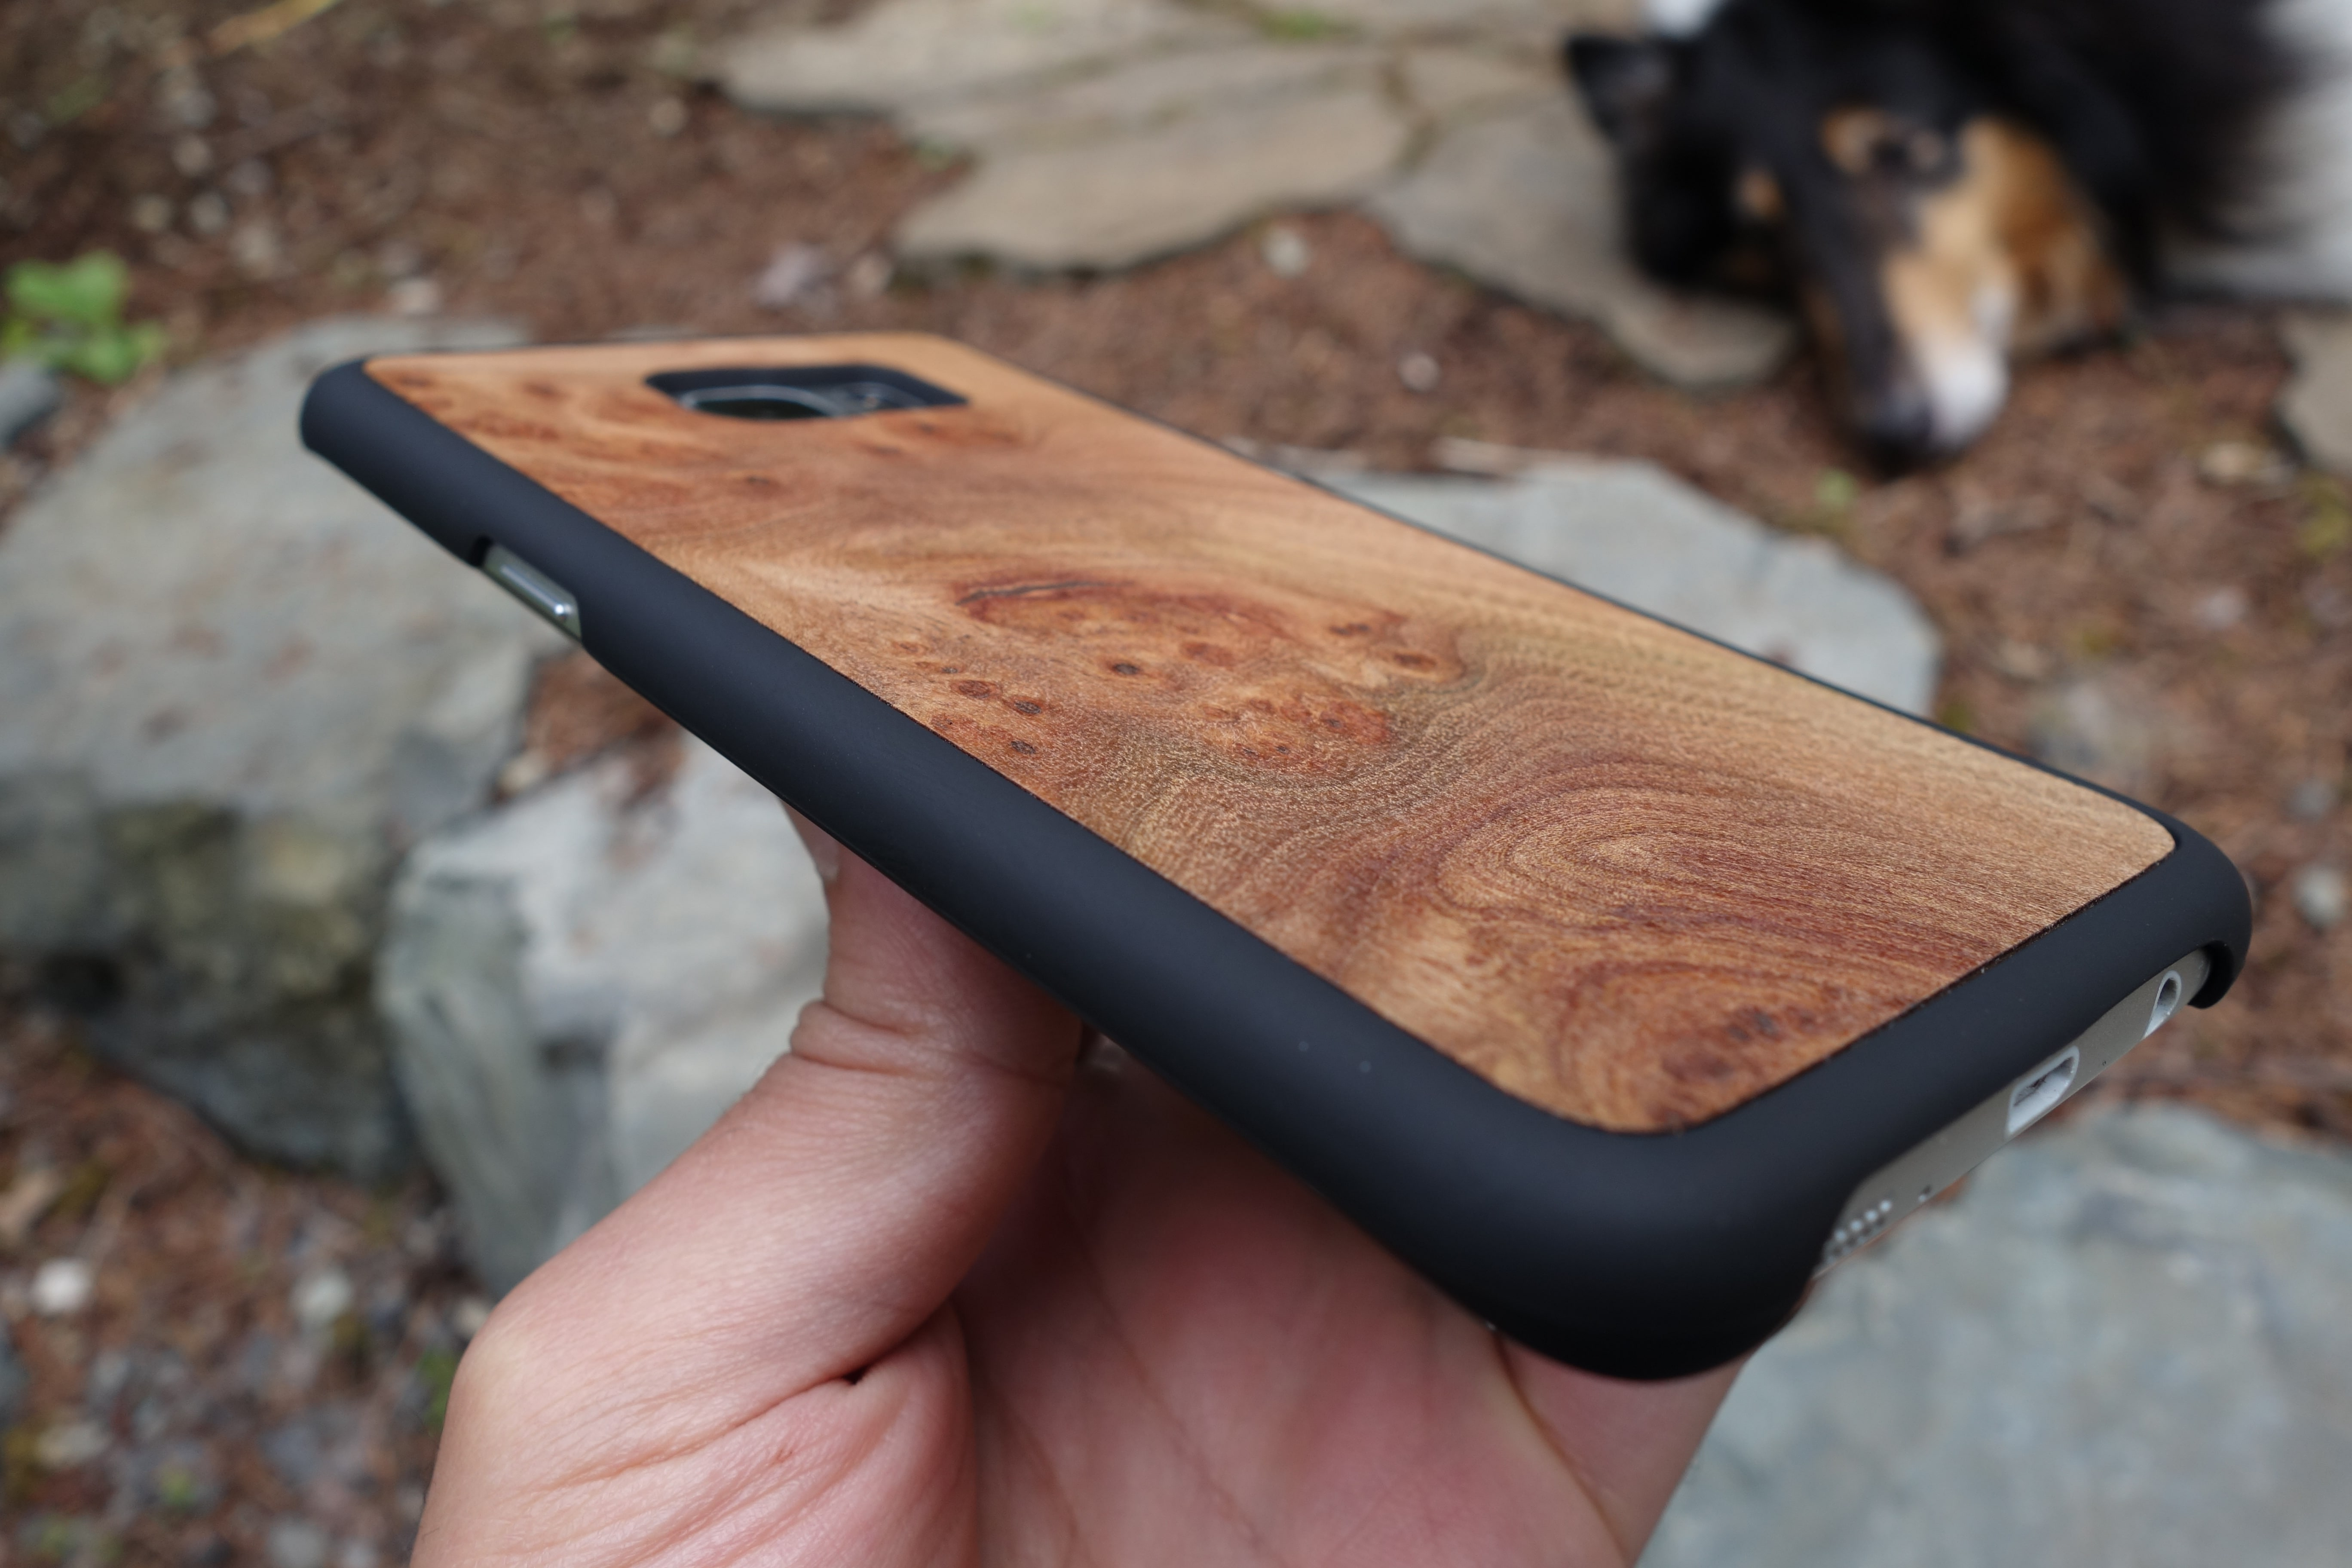 Cover Up Your Phone With Wood S7 Edge Woodback Case Review